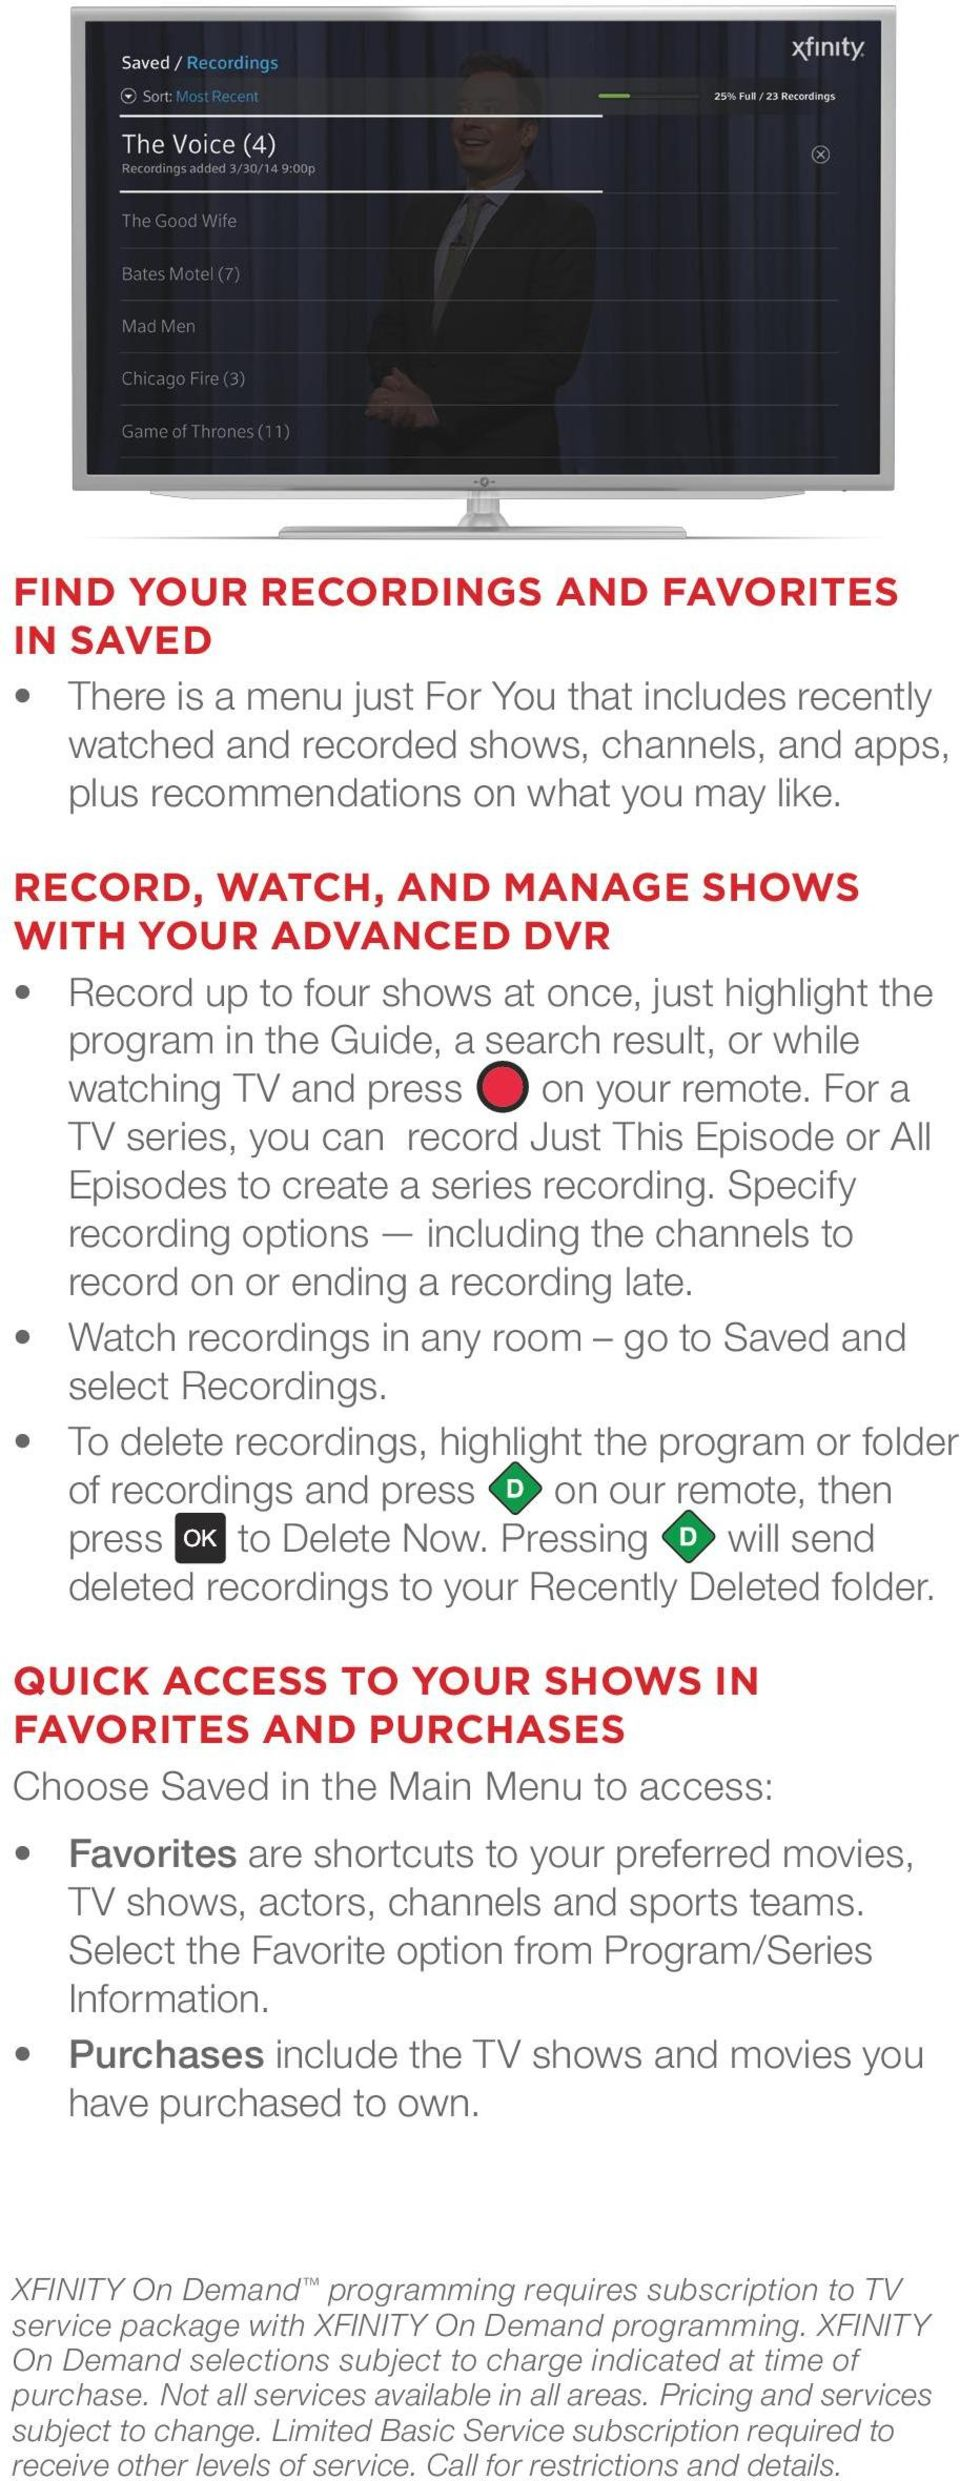 For a TV series, you can record Just This Episode or All Episodes to create a series recording. Specify recording options including the channels to record on or ending a recording late.